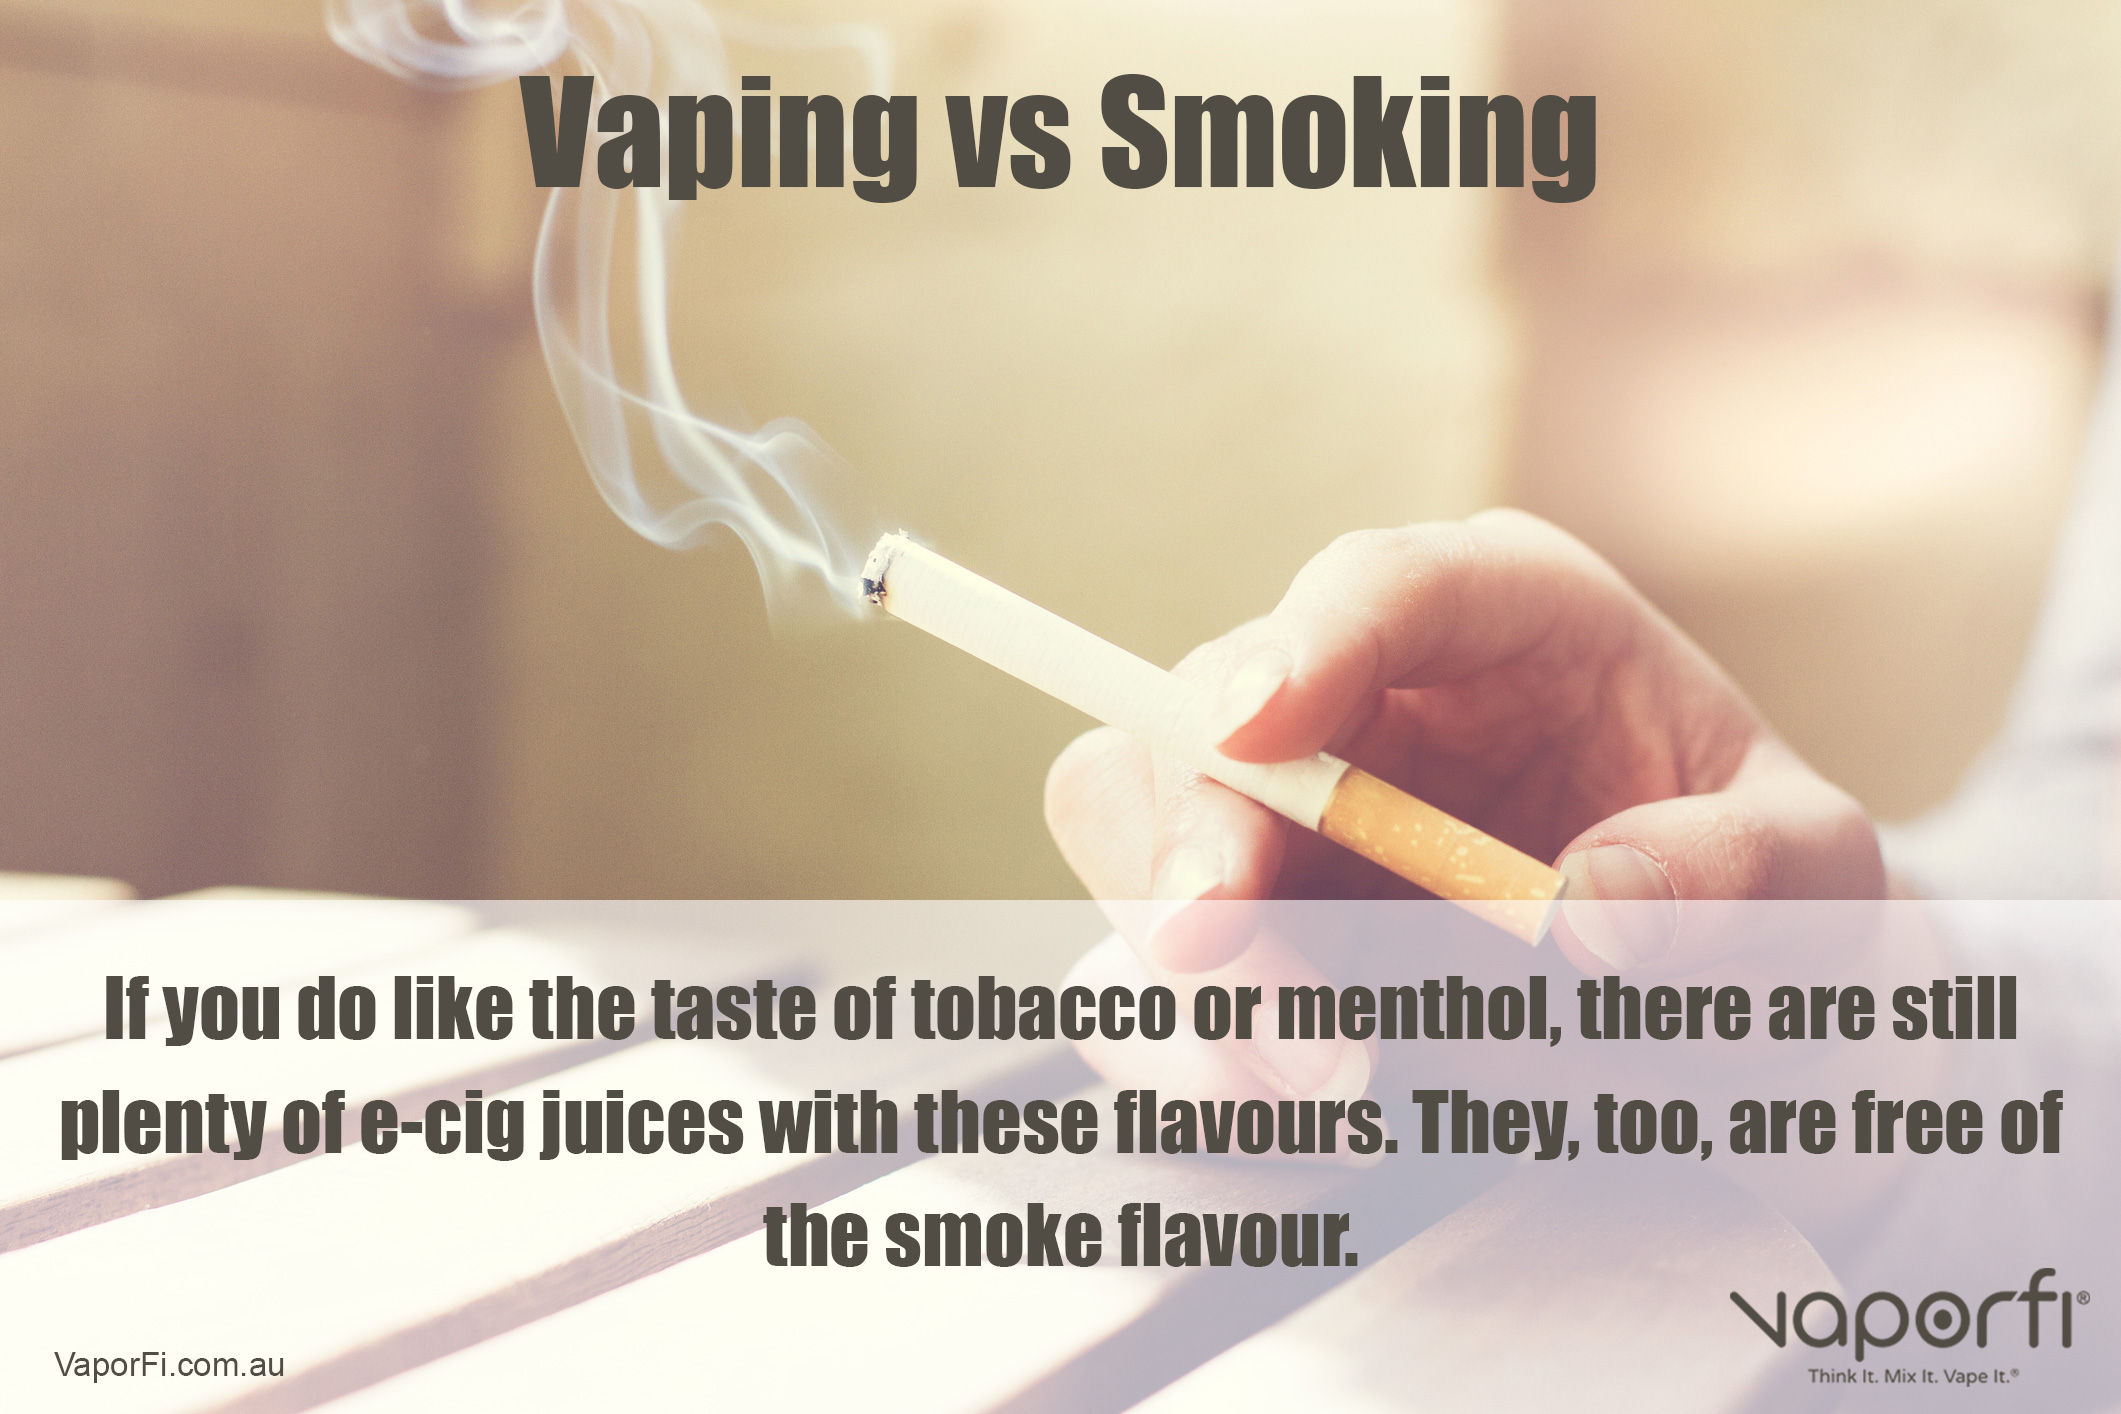 VaporFi Australia - Benefits of Vaping Versus Smoking: Smell